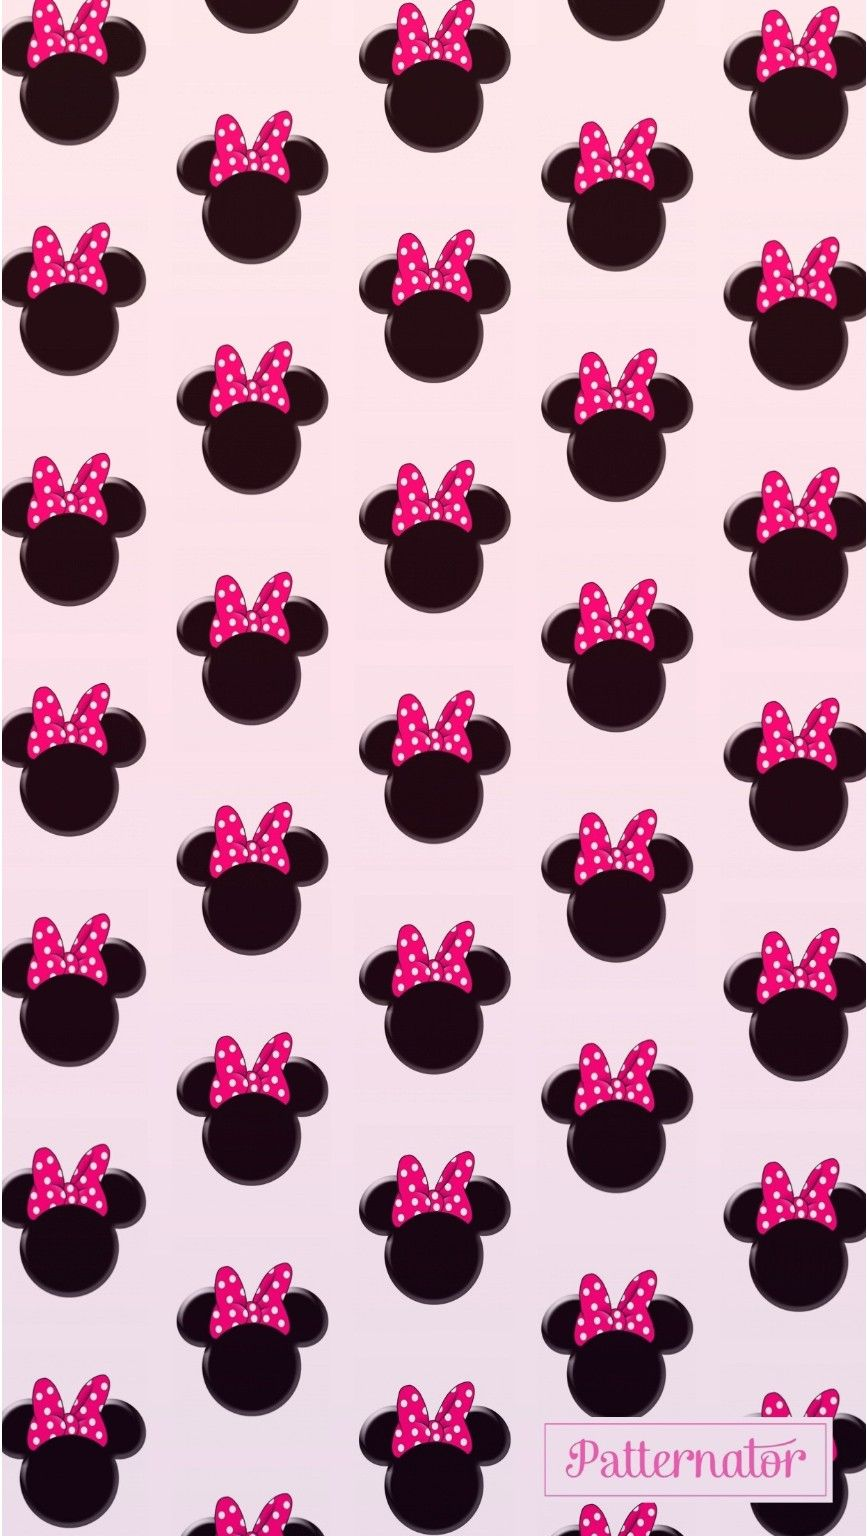 Disney Wallpaper Minnie Mouse Backdrops Phone Backgrounds Patterns Wallpapers Invitations